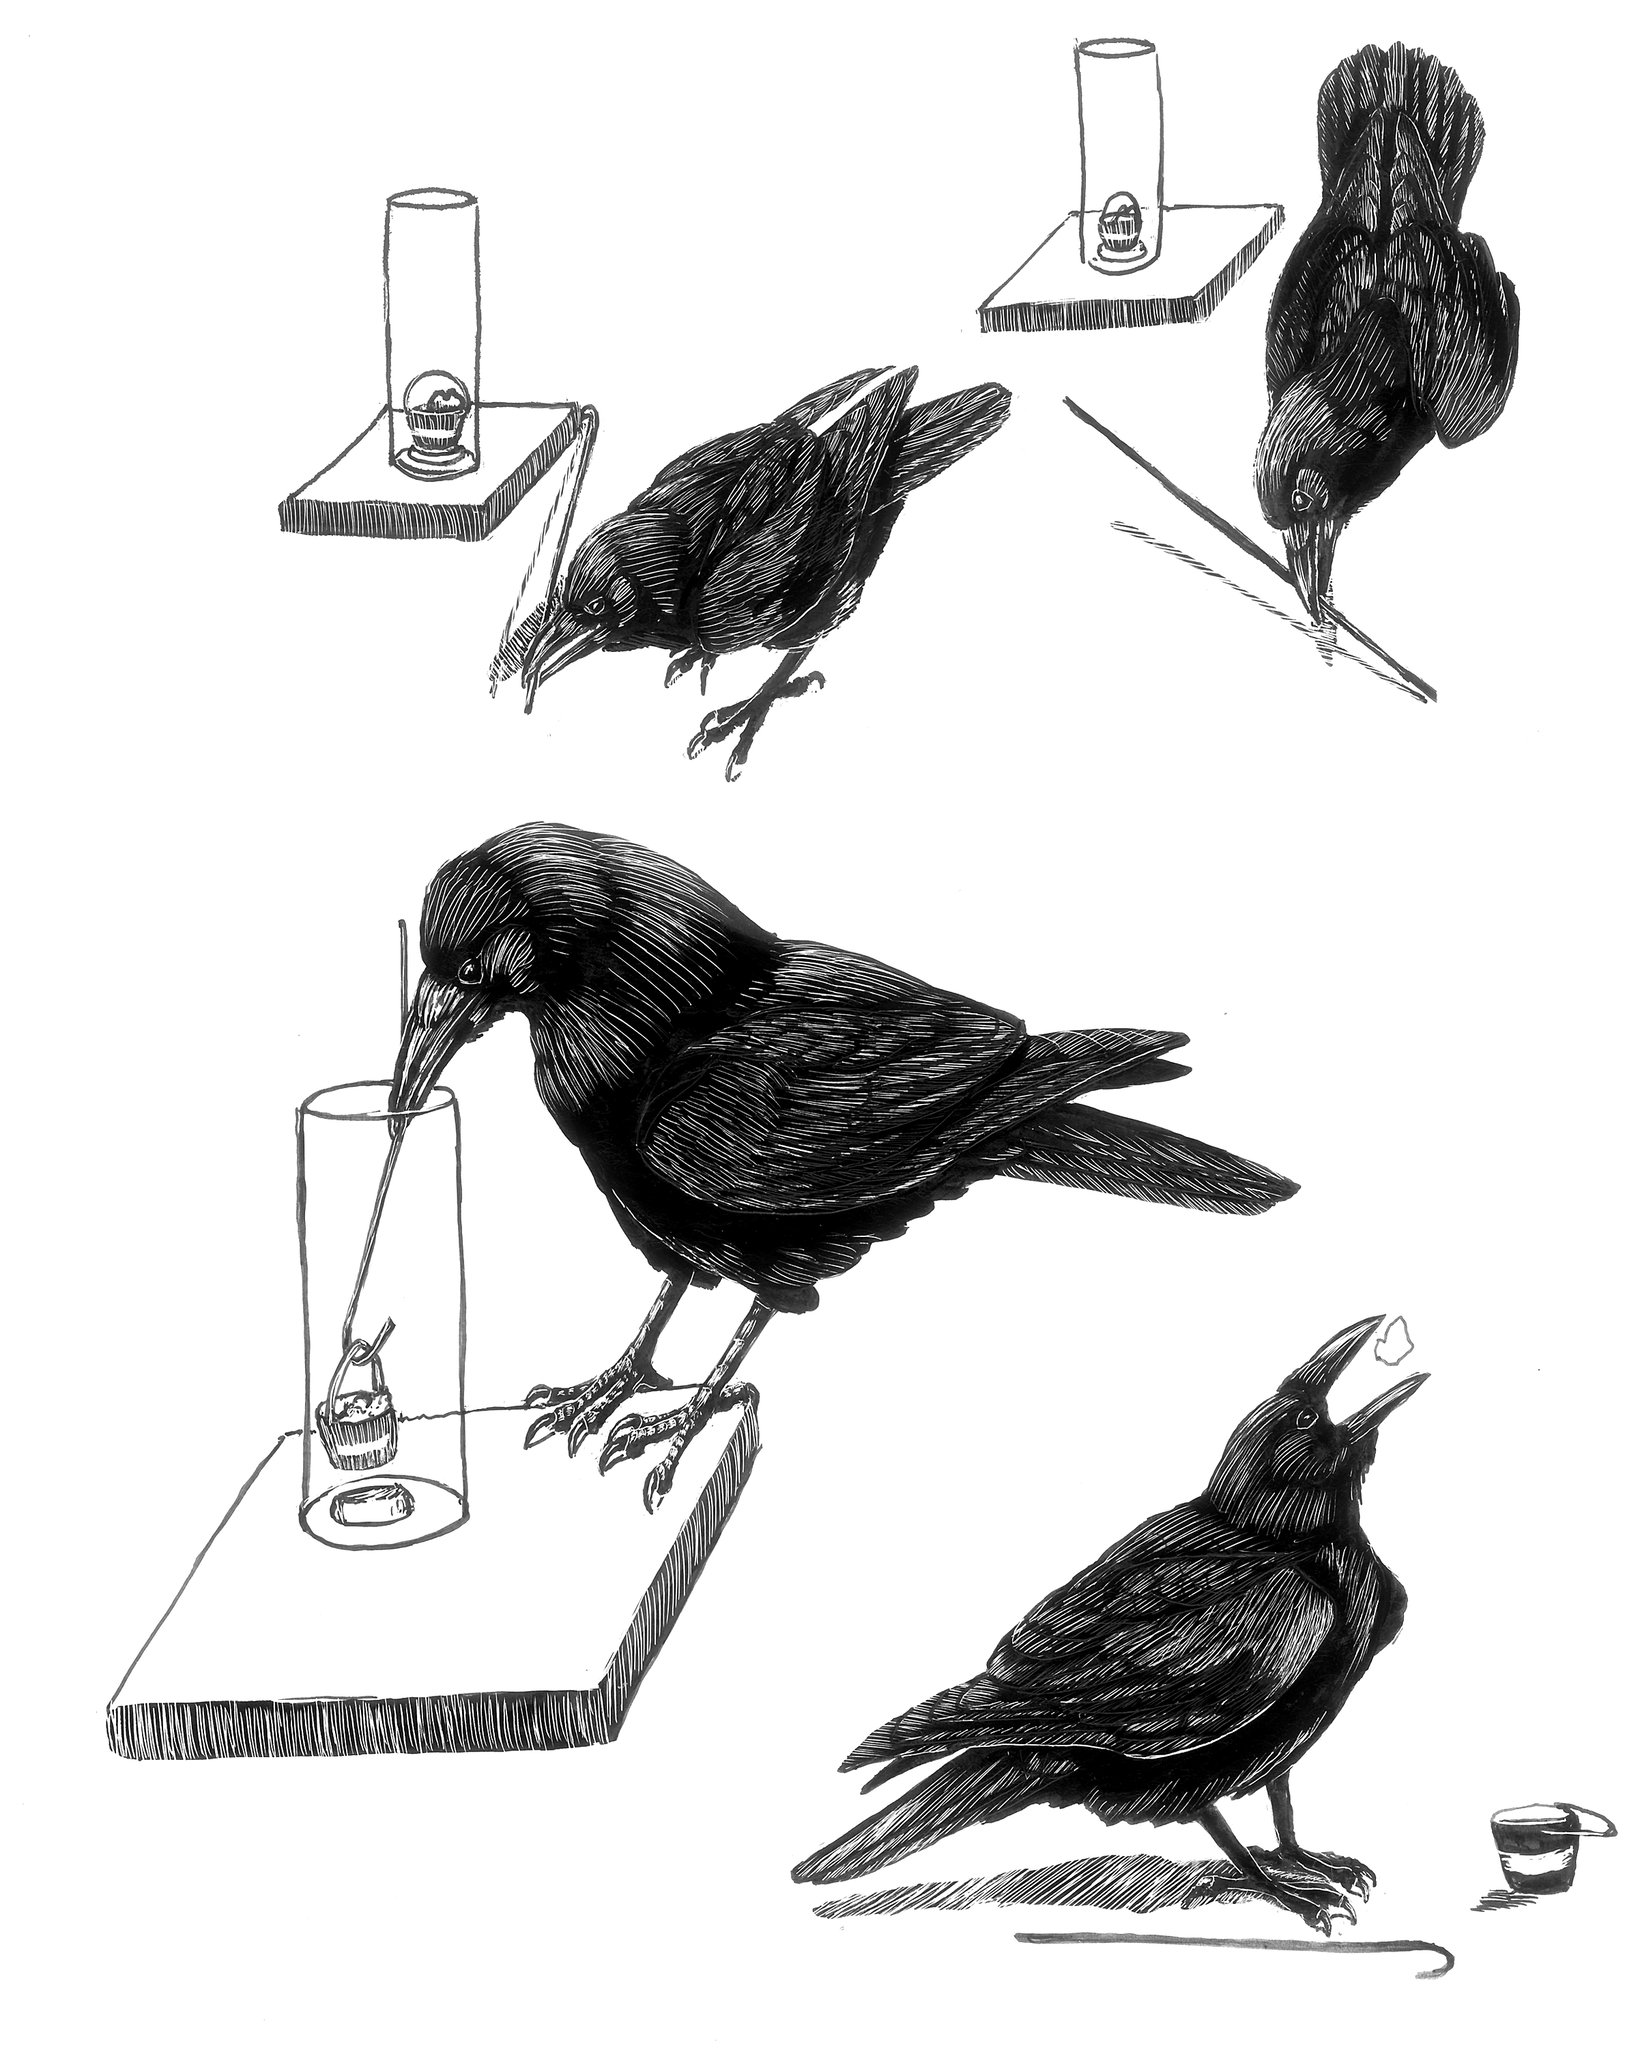 'Gifts of the Crow' and 'Bird Sense': The Lives of the